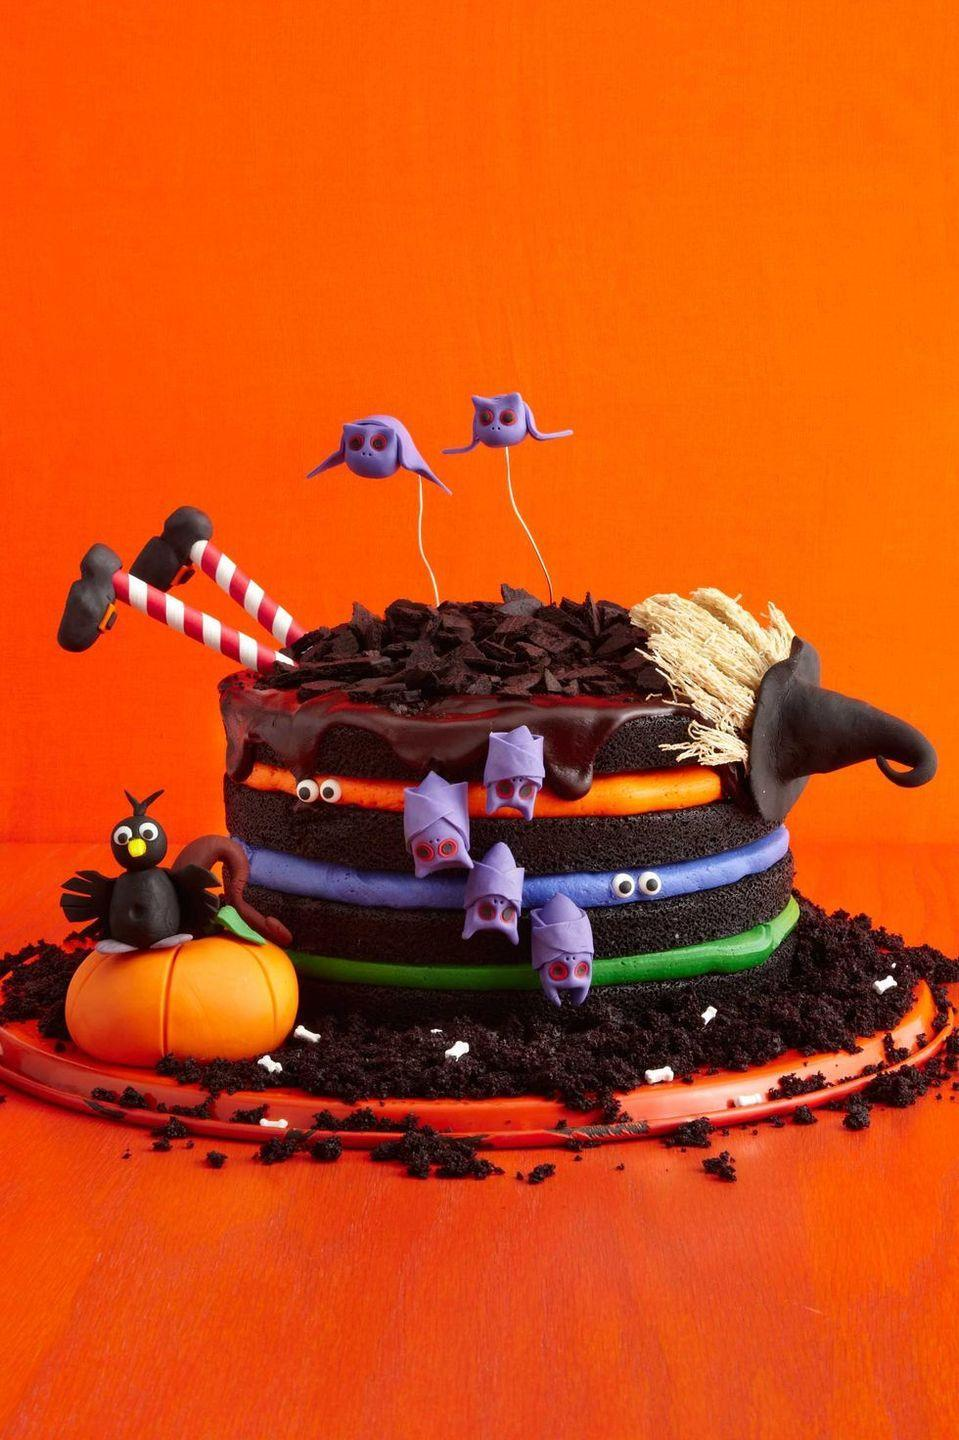 """<p>You don't need a special spell to put together this fun black chocolate witch cake — just colorful buttercream and spooky decorations.<em><br><br><a href=""""https://www.womansday.com/food-recipes/food-drinks/recipes/a51843/black-chocolate-cake/"""" rel=""""nofollow noopener"""" target=""""_blank"""" data-ylk=""""slk:Get the recipe for Black Chocolate Witch Cake"""" class=""""link rapid-noclick-resp"""">Get the recipe for Black Chocolate Witch Cake</a>.</em><br></p>"""